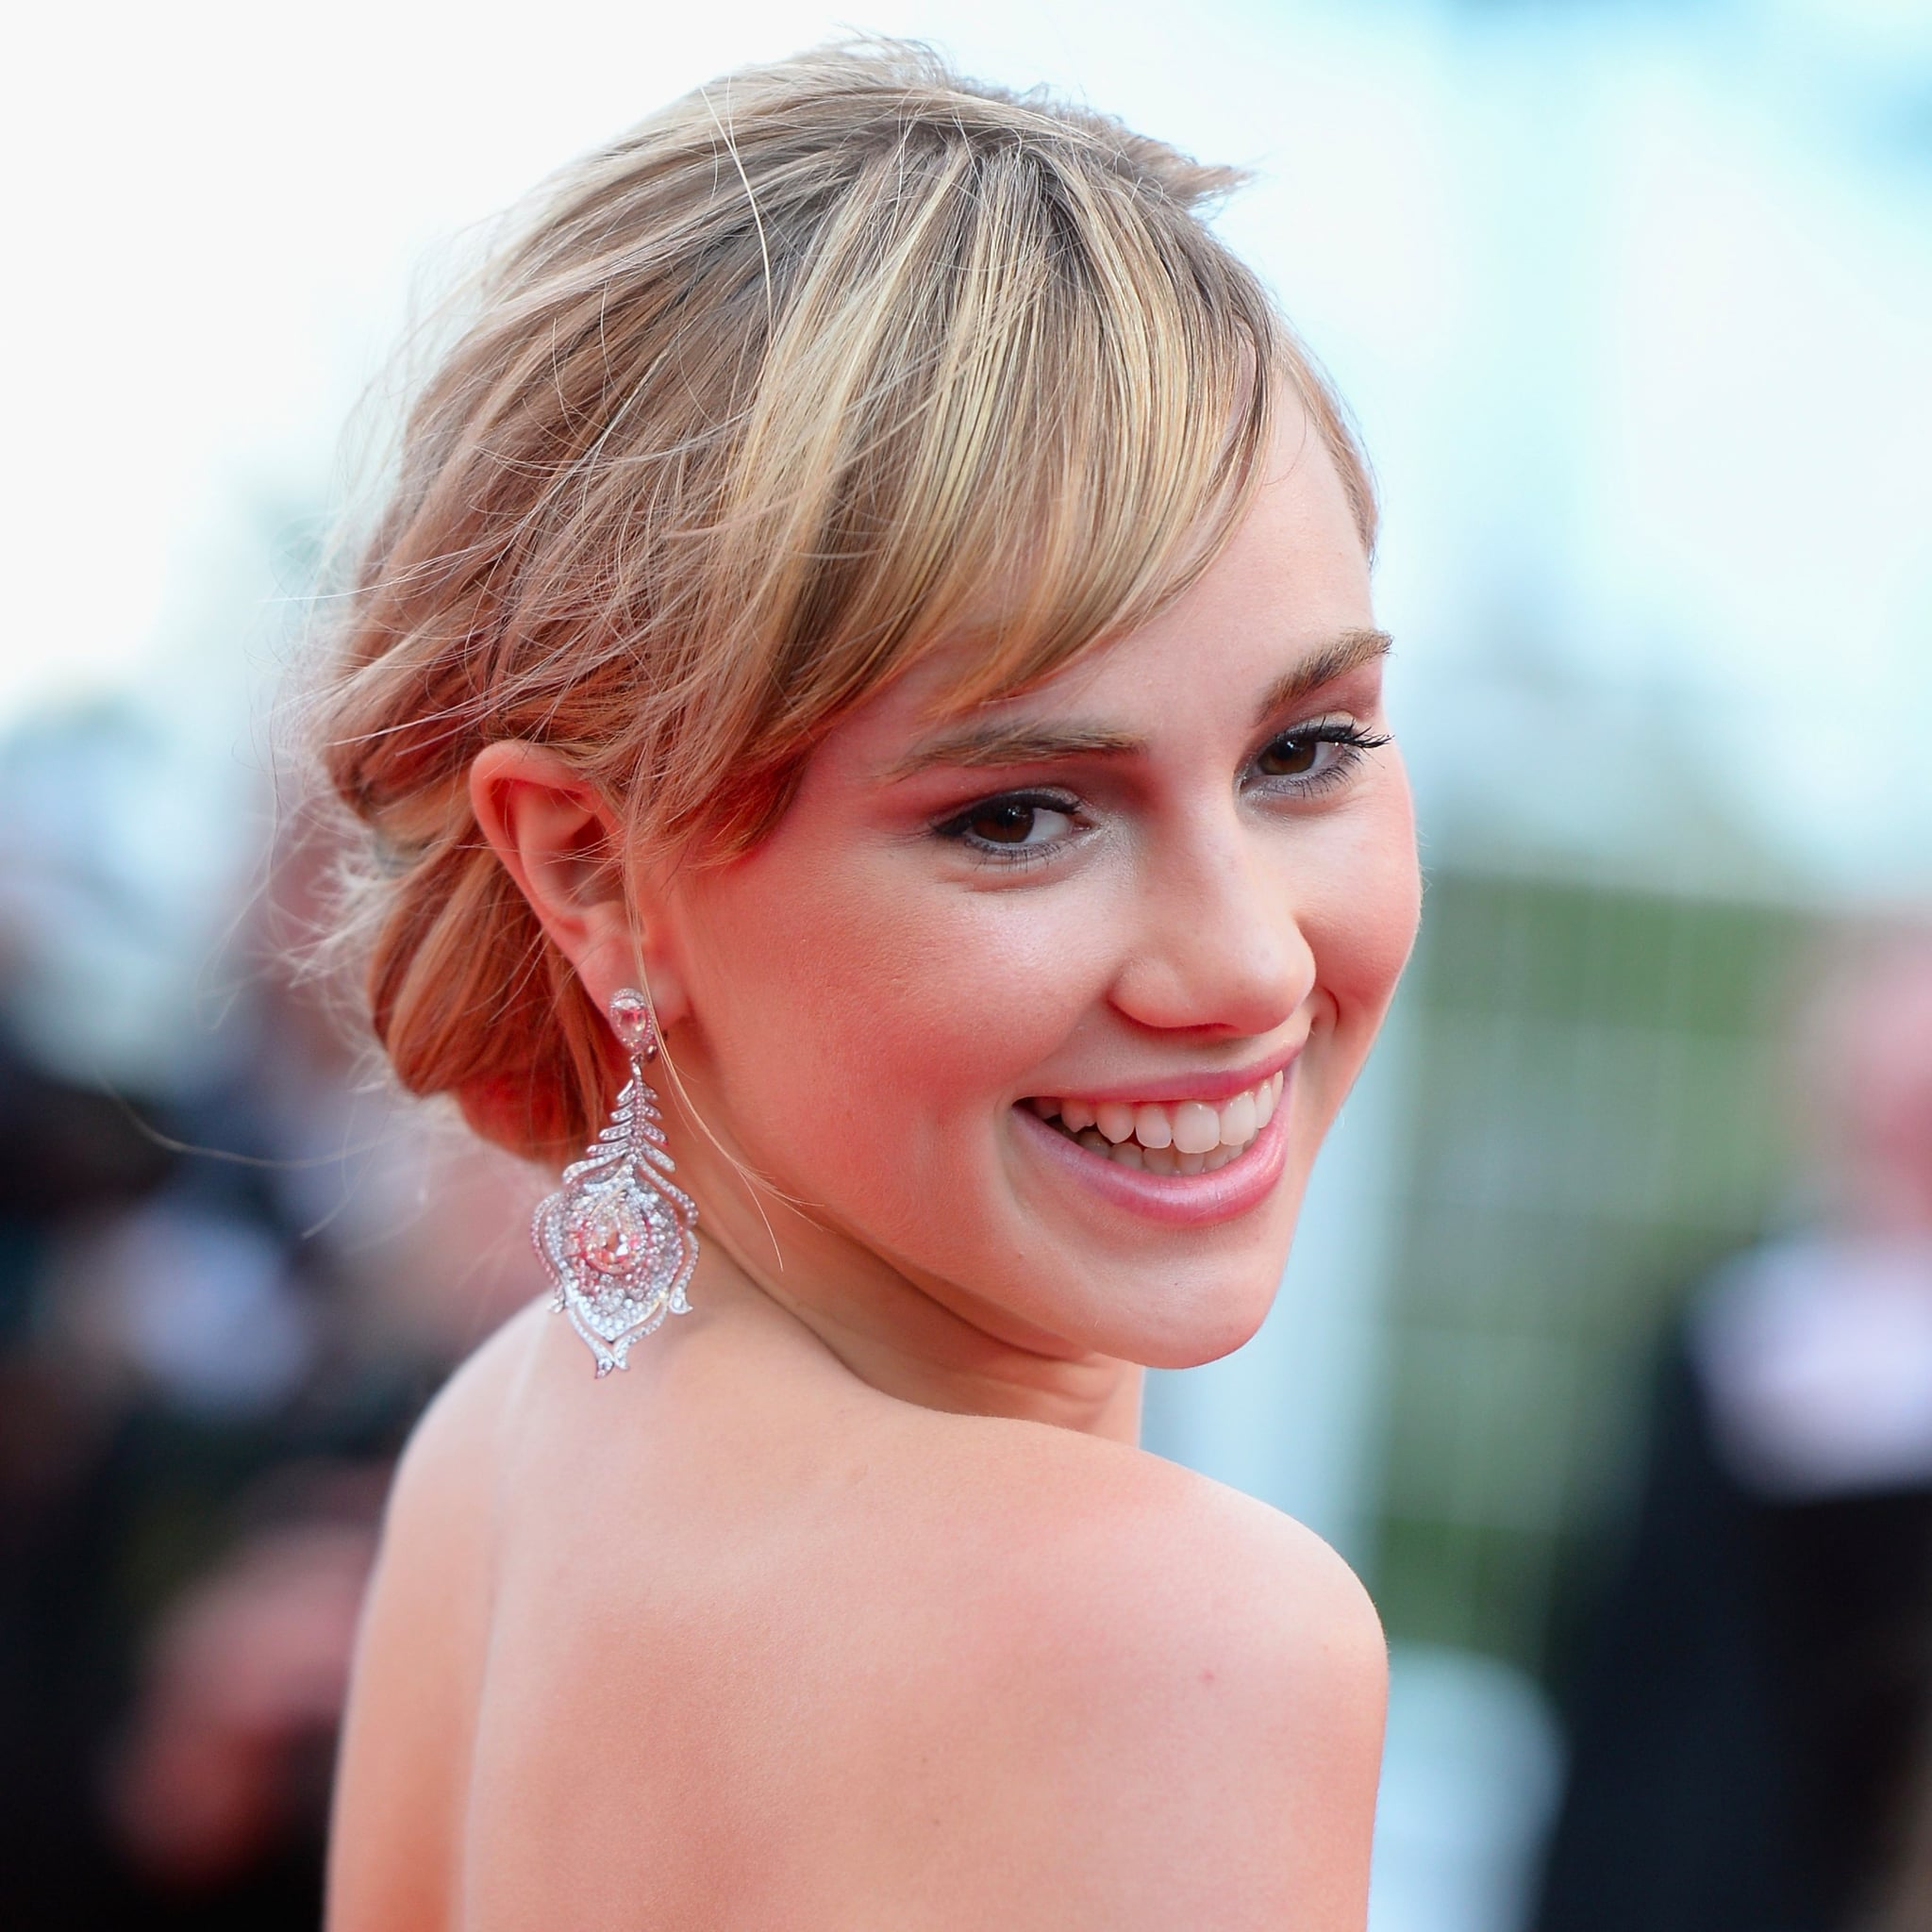 How to wear hair up with a fringe popsugar beauty uk solutioingenieria Image collections